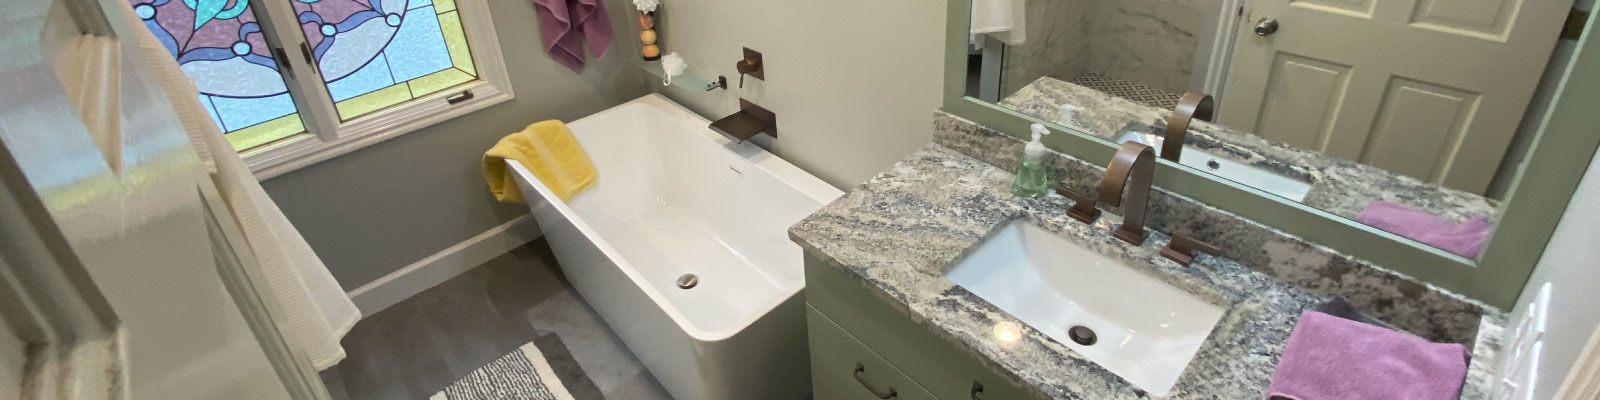 Utah Bathroom Remodeling 48 Day Kitchen Bath New Bathroom Remodel Utah Painting